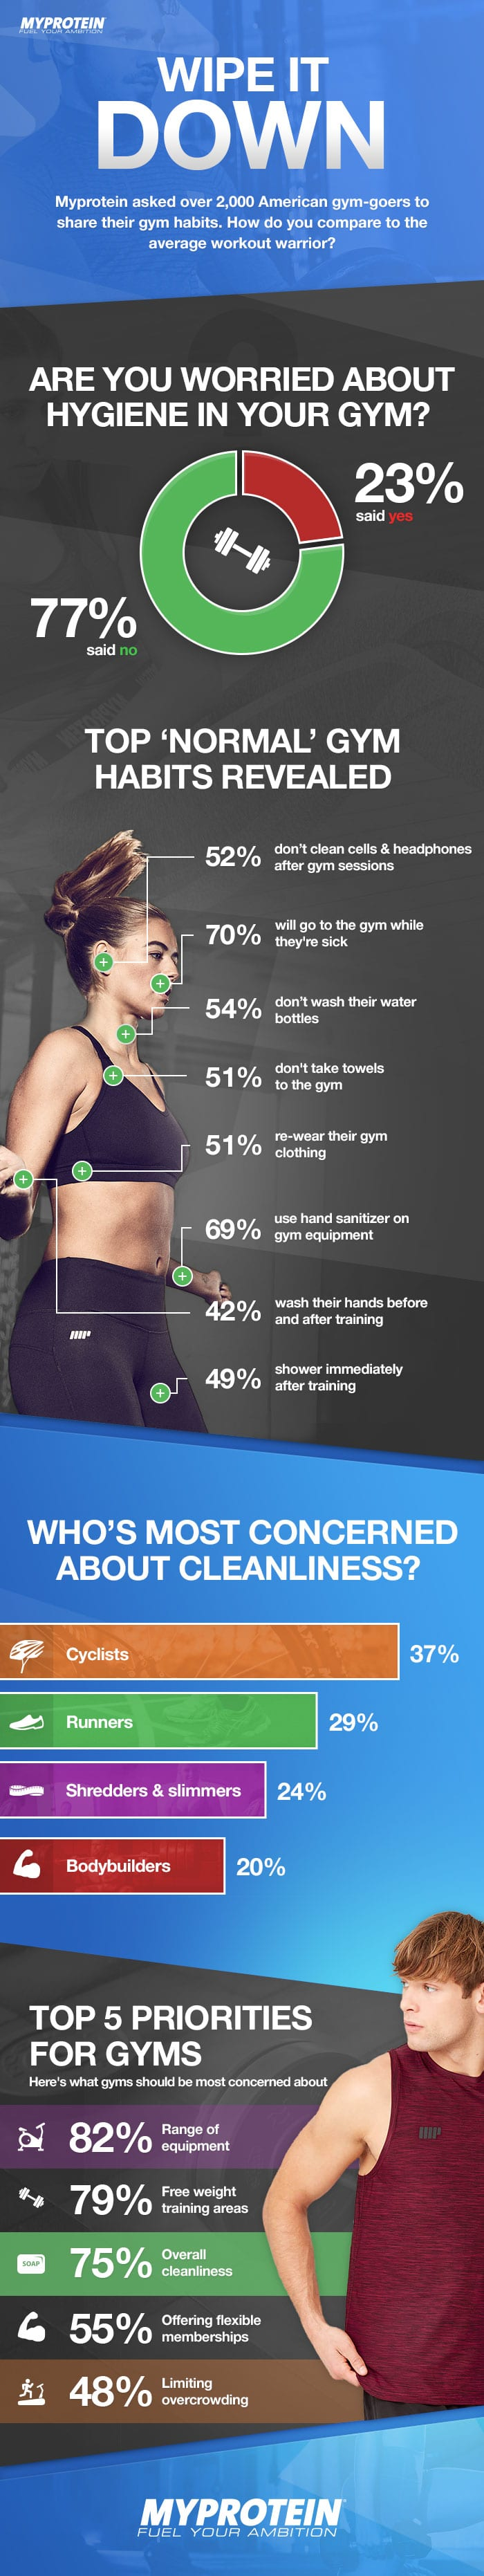 myprotein infographic about the most normal gym habits in america